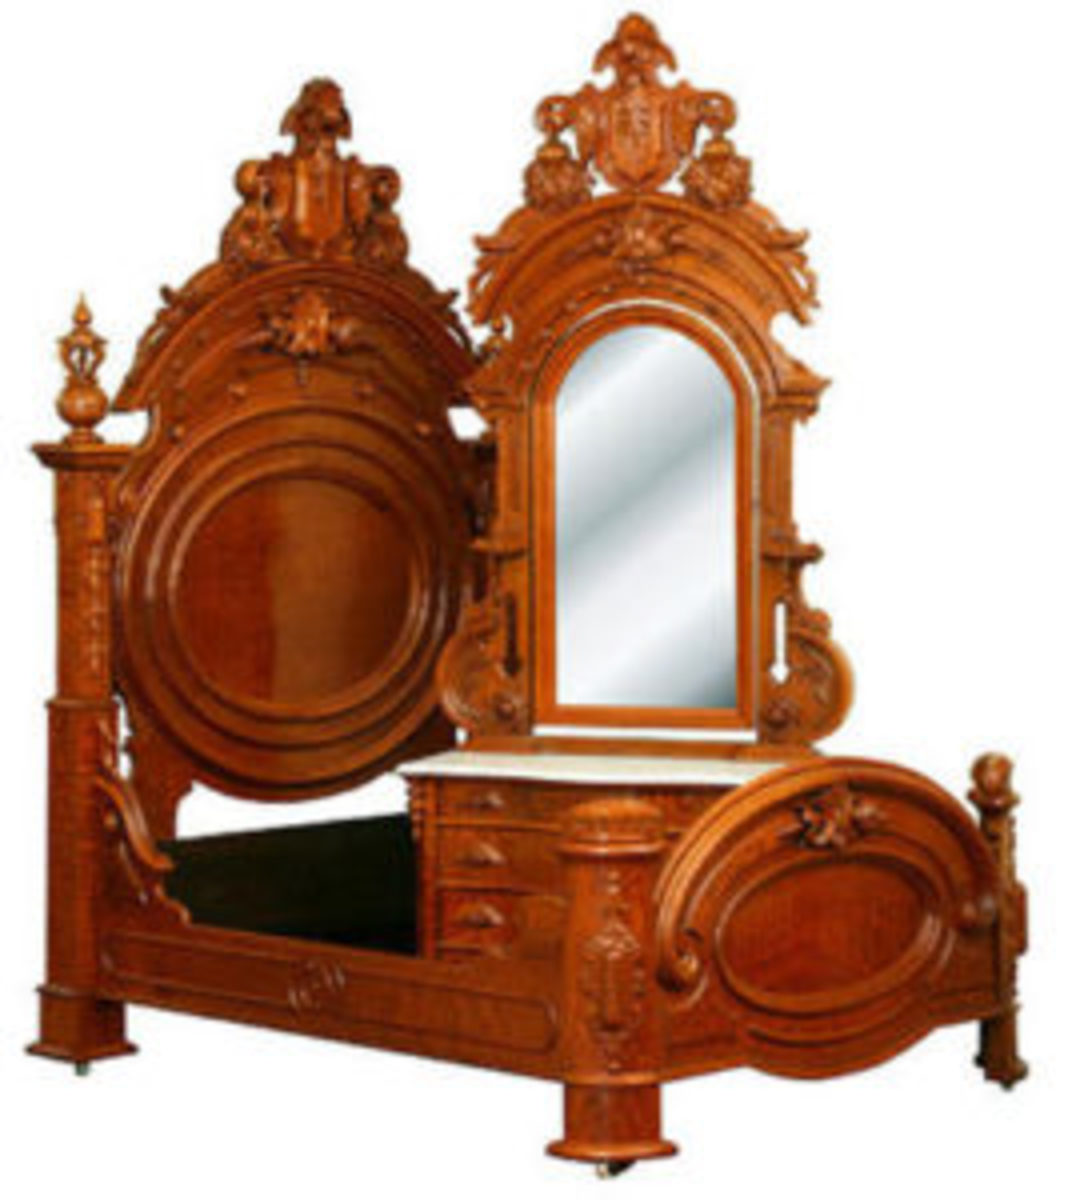 One of the most interesting periods of American furniture in terms of sheer adaptability is the Renaissance Revival period, circa 1860-1885.